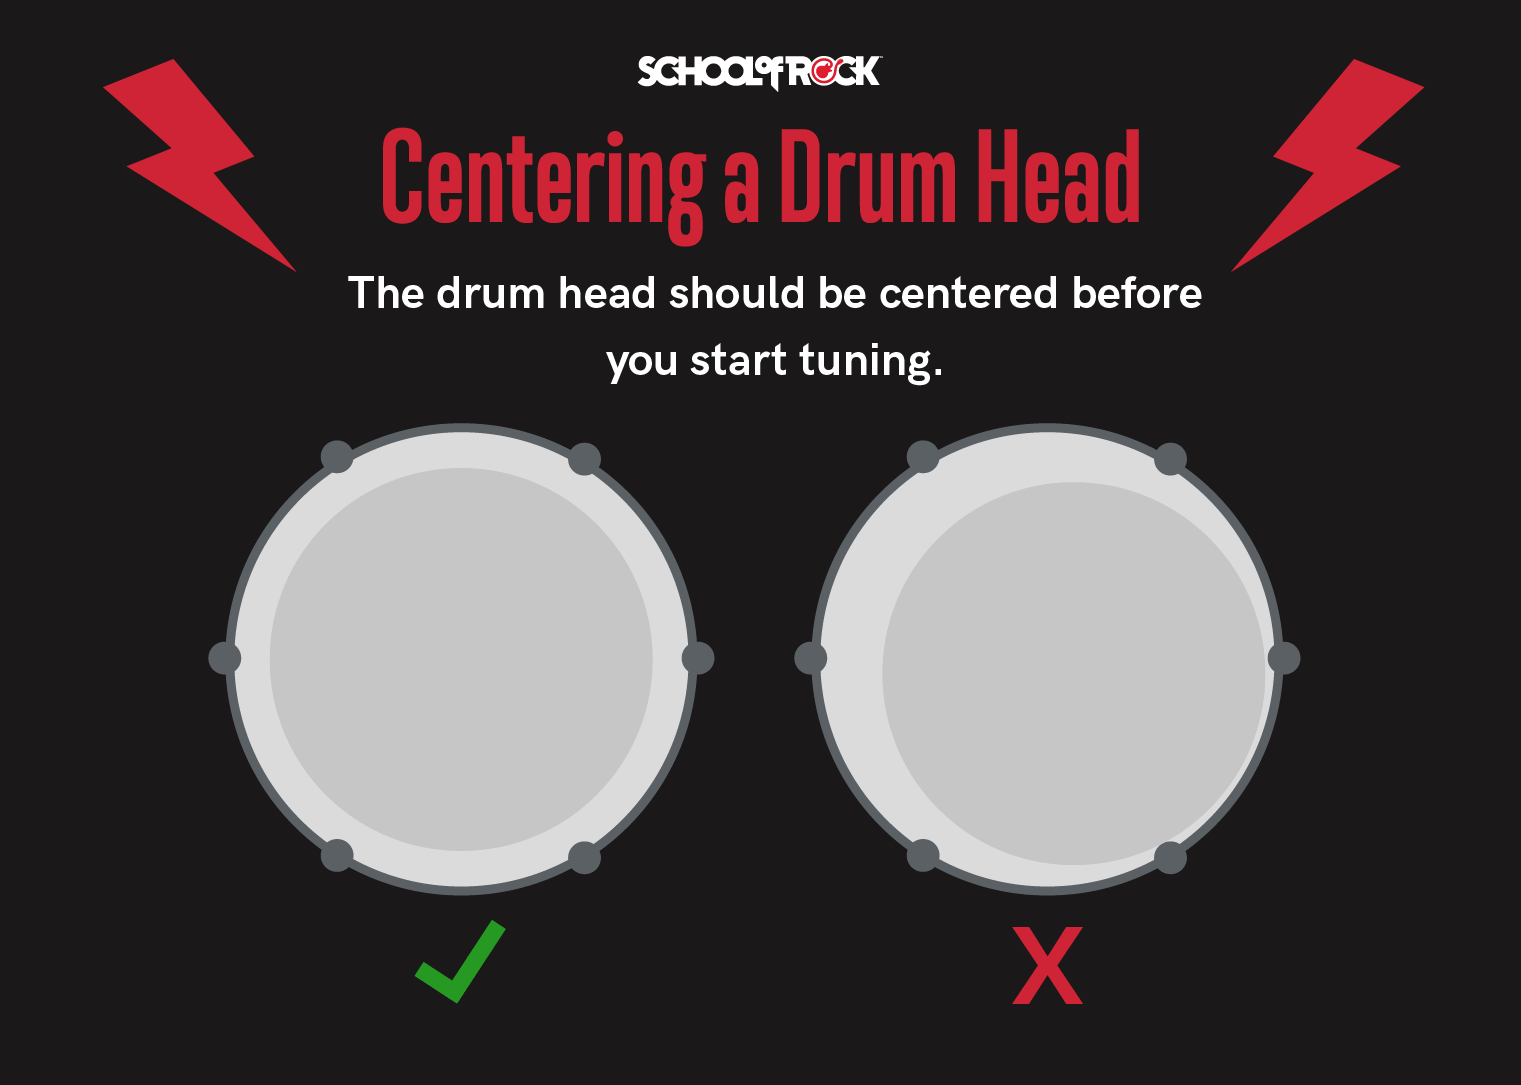 Center your drum head before you start tuning.